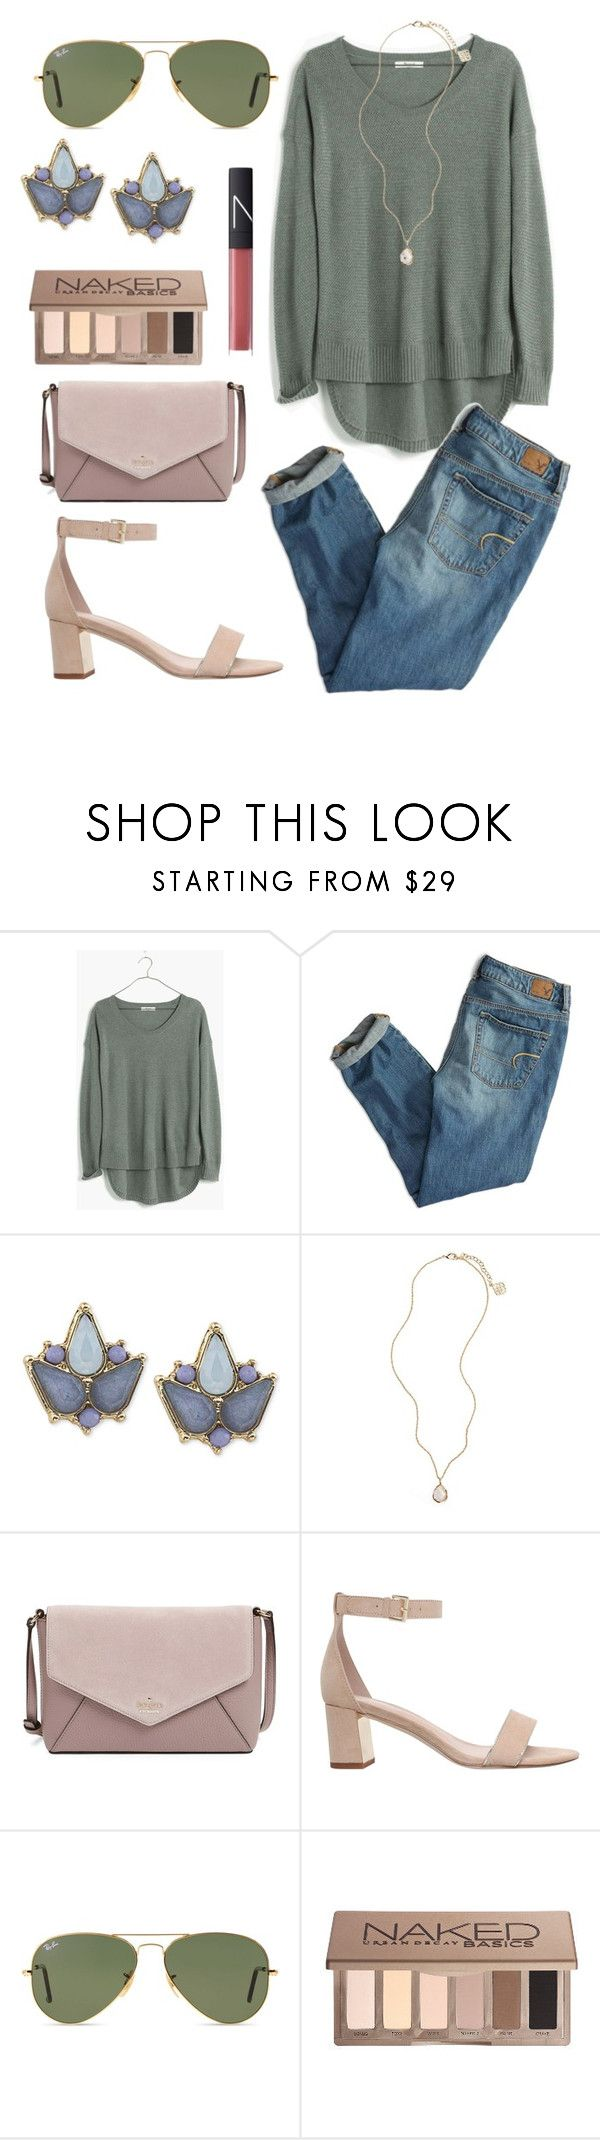 """""""Untitled #303"""" by juliacm-bush ❤ liked on Polyvore featuring Madewell, American Eagle Outfitters, Carolee, Kendra Scott, Kate Spade, Carvela, NARS Cosmetics, Ray-Ban and Urban Decay"""